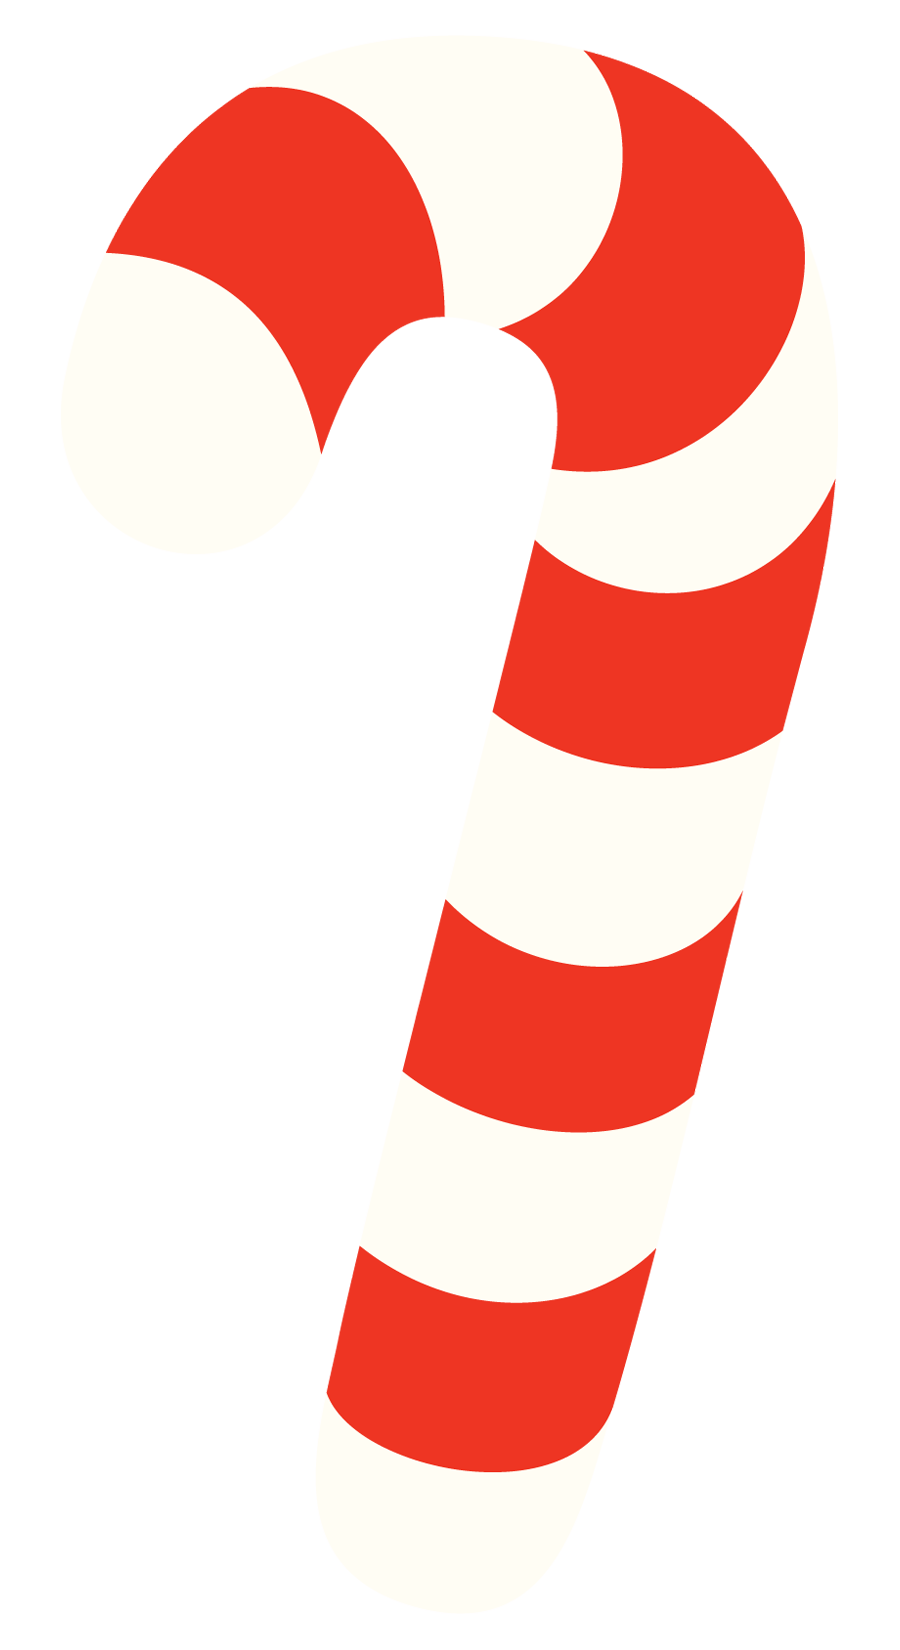 Candy Cane clipart cany Image this Domain You required